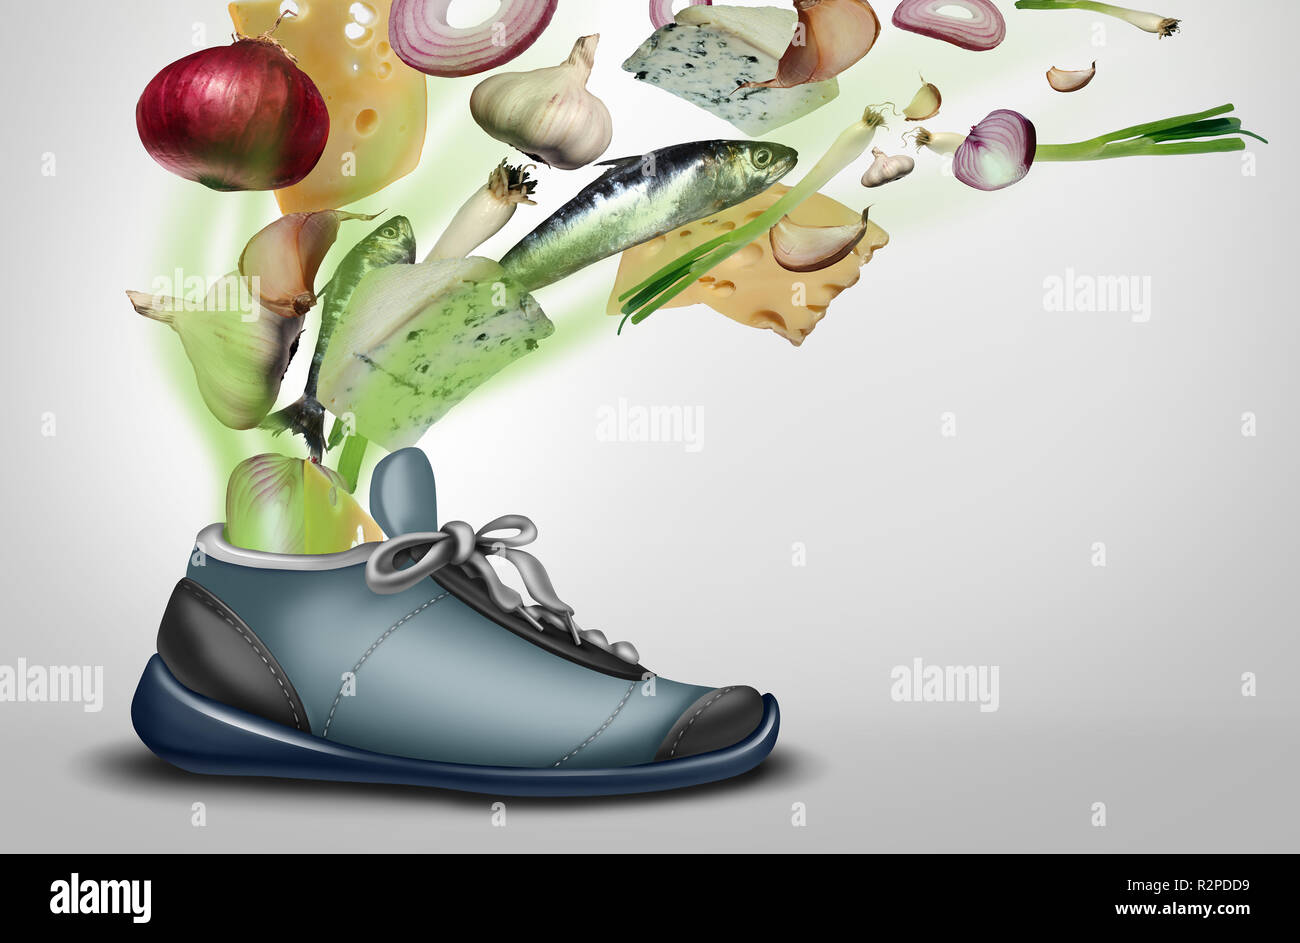 Smelly shoe as a dirty stinky sweaty sneaker or footwear with foot or smelly feet perspiration with 3D illustration elements. - Stock Image